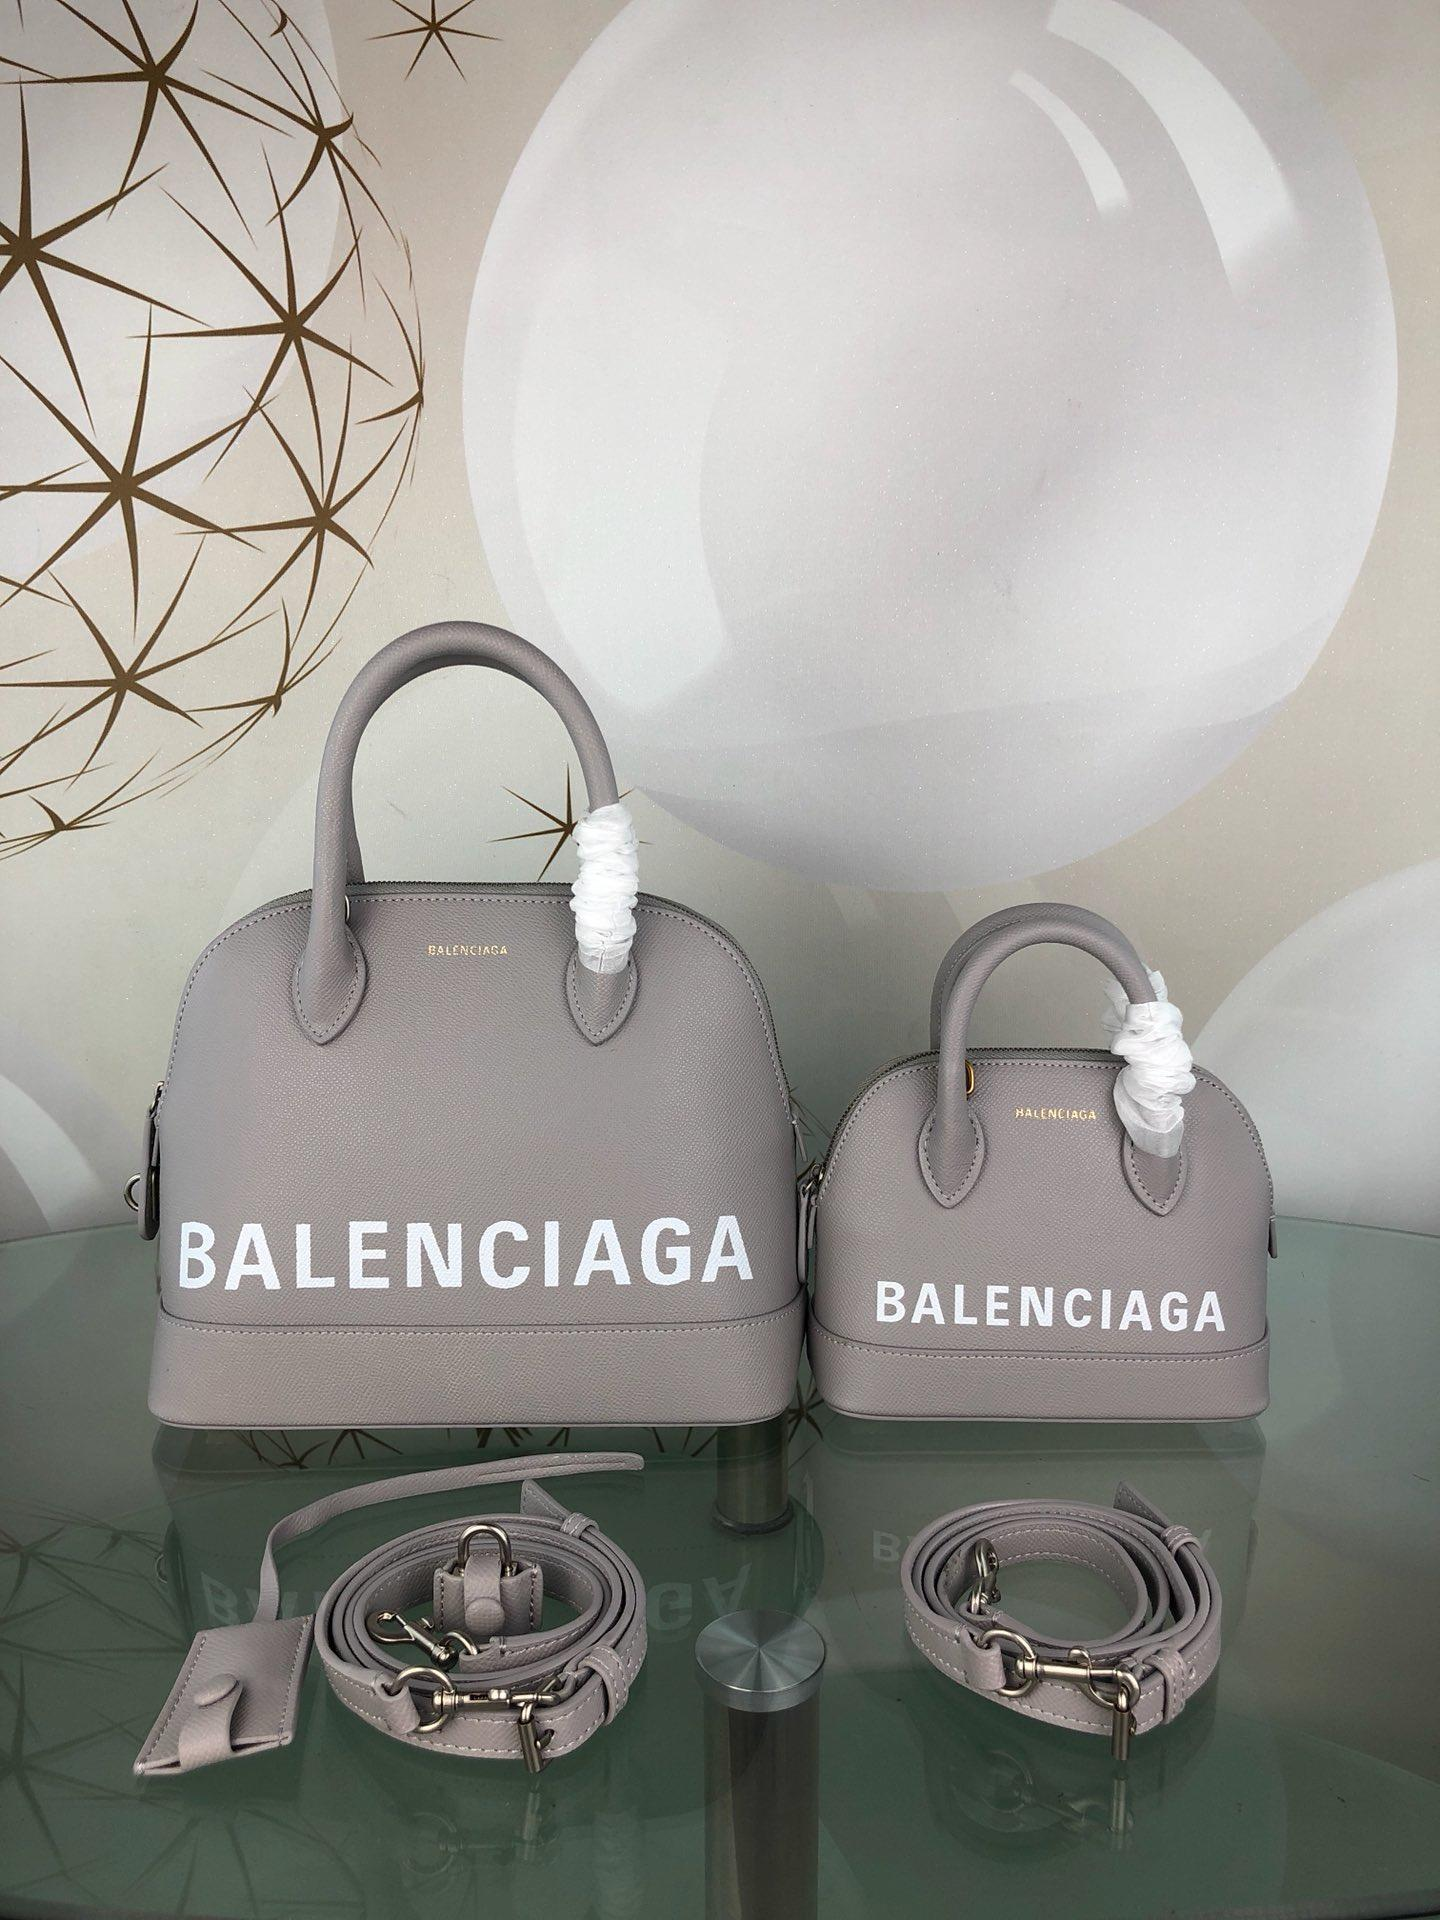 Balenciaga women's top hand crossbody bag handbag shell bag is the latest to hit 1